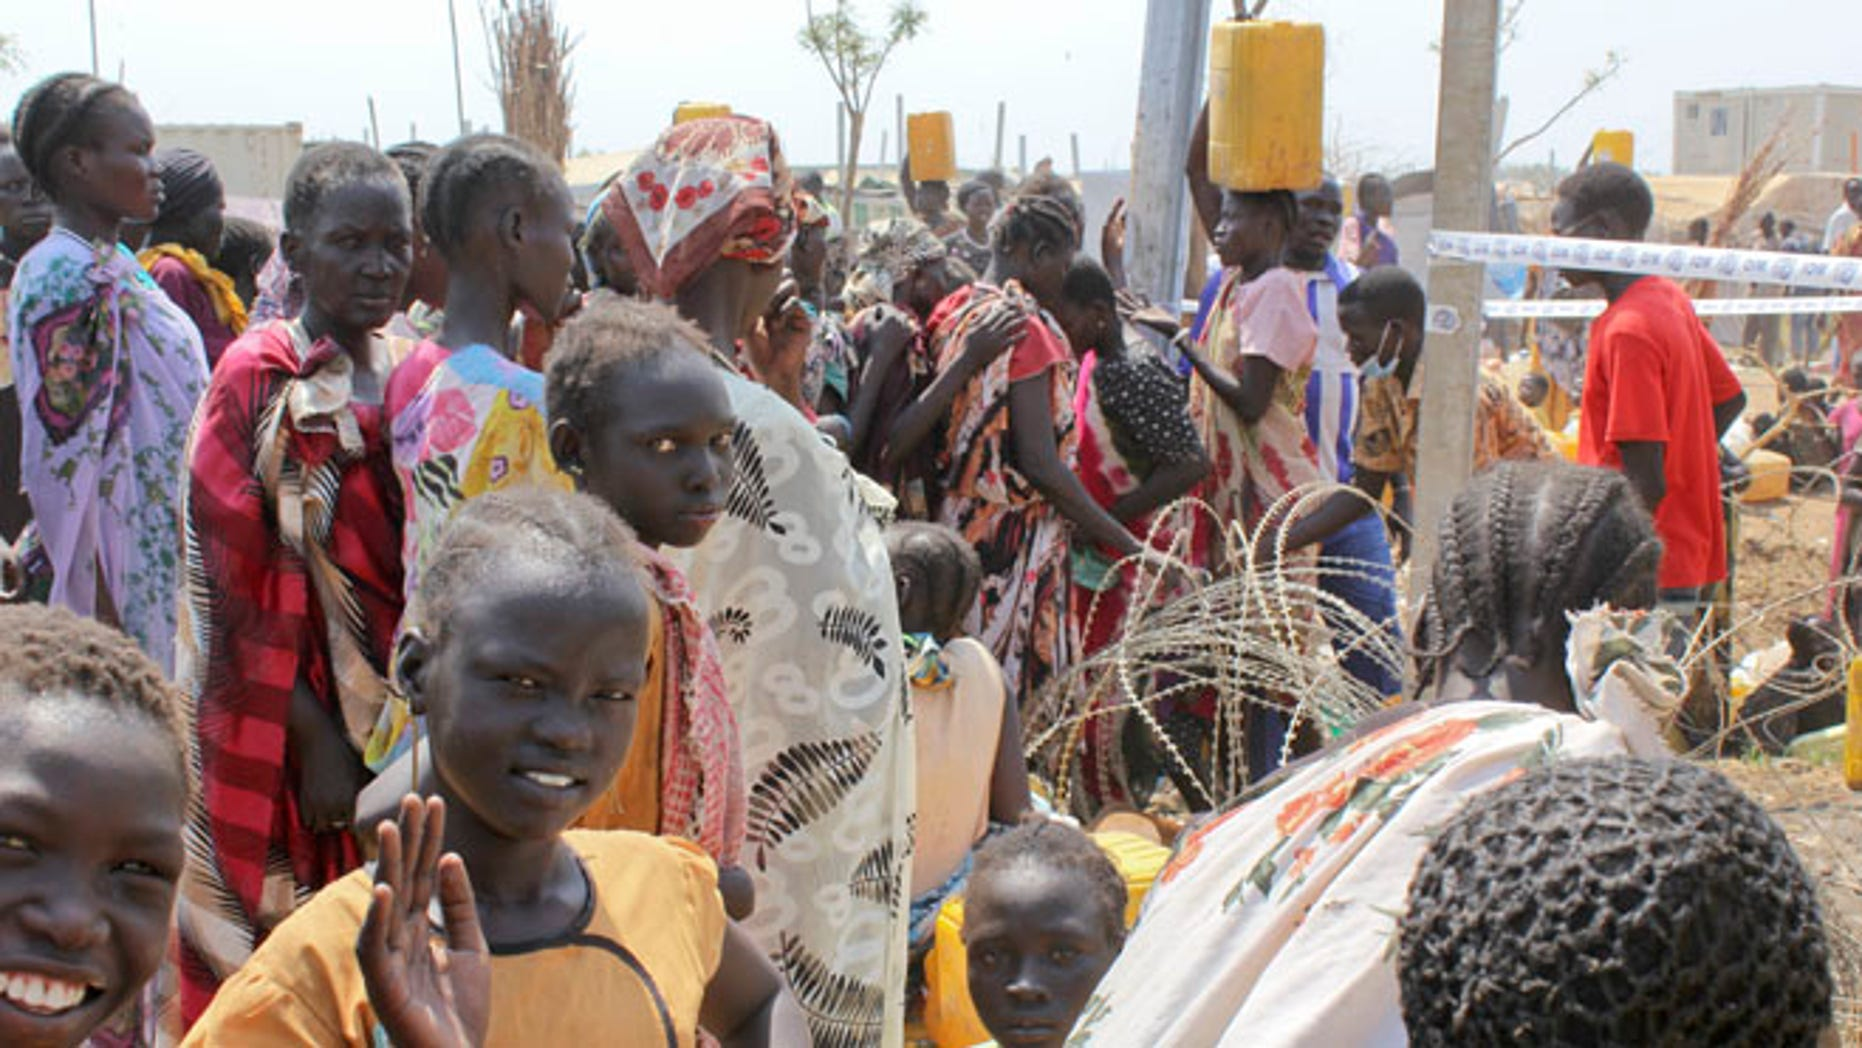 Jan. 28, 2014: In this photo, displaced South Sudanese women queue for water at the United Nations base where they have sought shelter in Malakal, South Sudan.